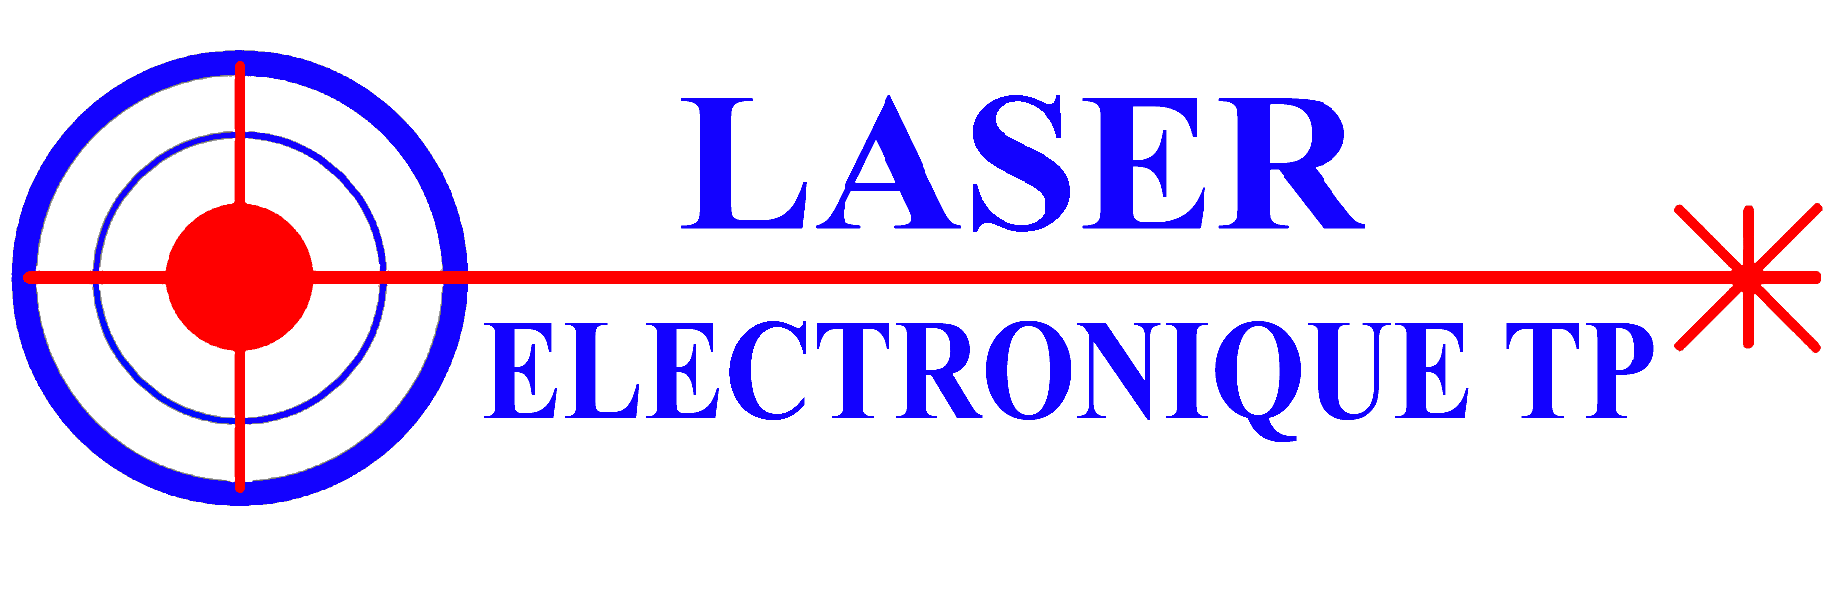 LASER ELECTRONIQUE TP